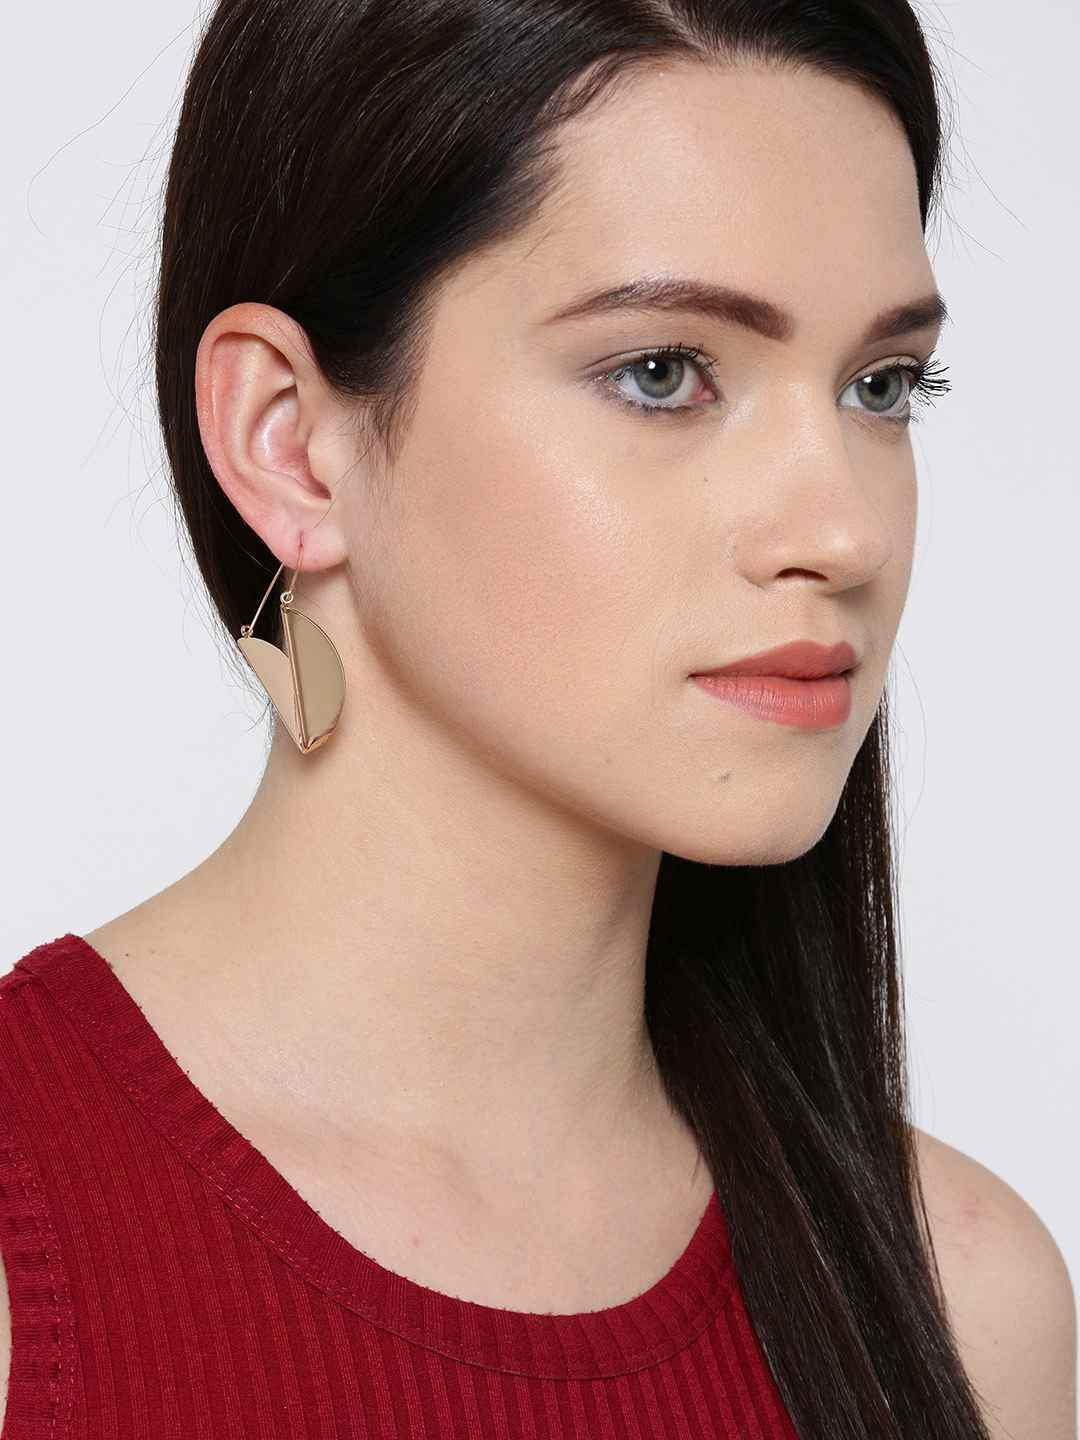 Bellofox Bud Earrings